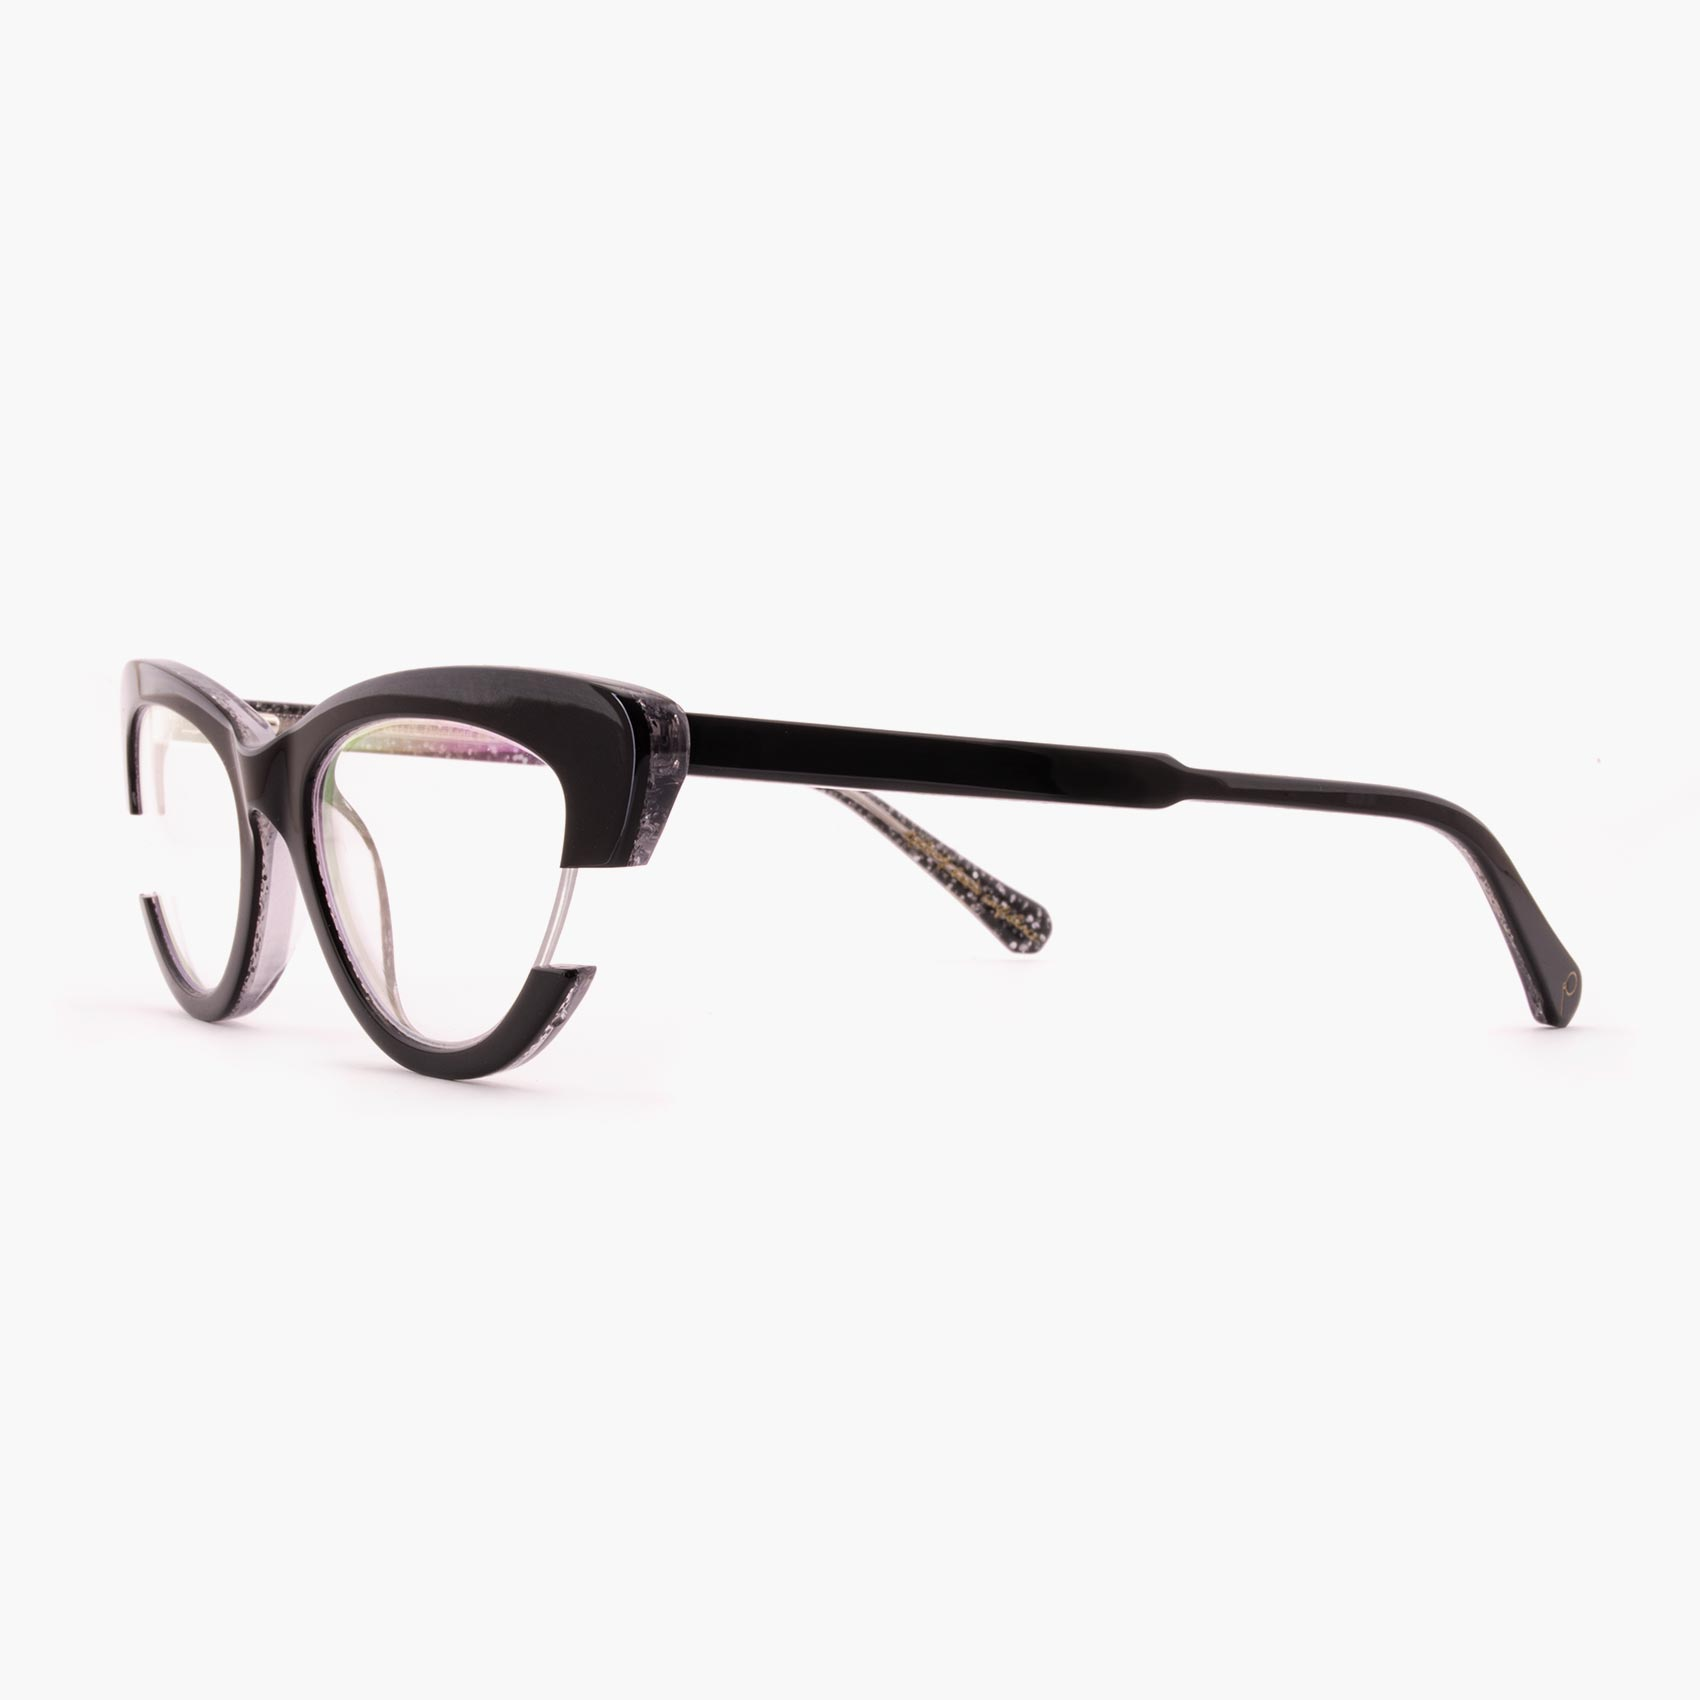 Proud eyewear Jennifer C3 L montura gafas mujer cat eye